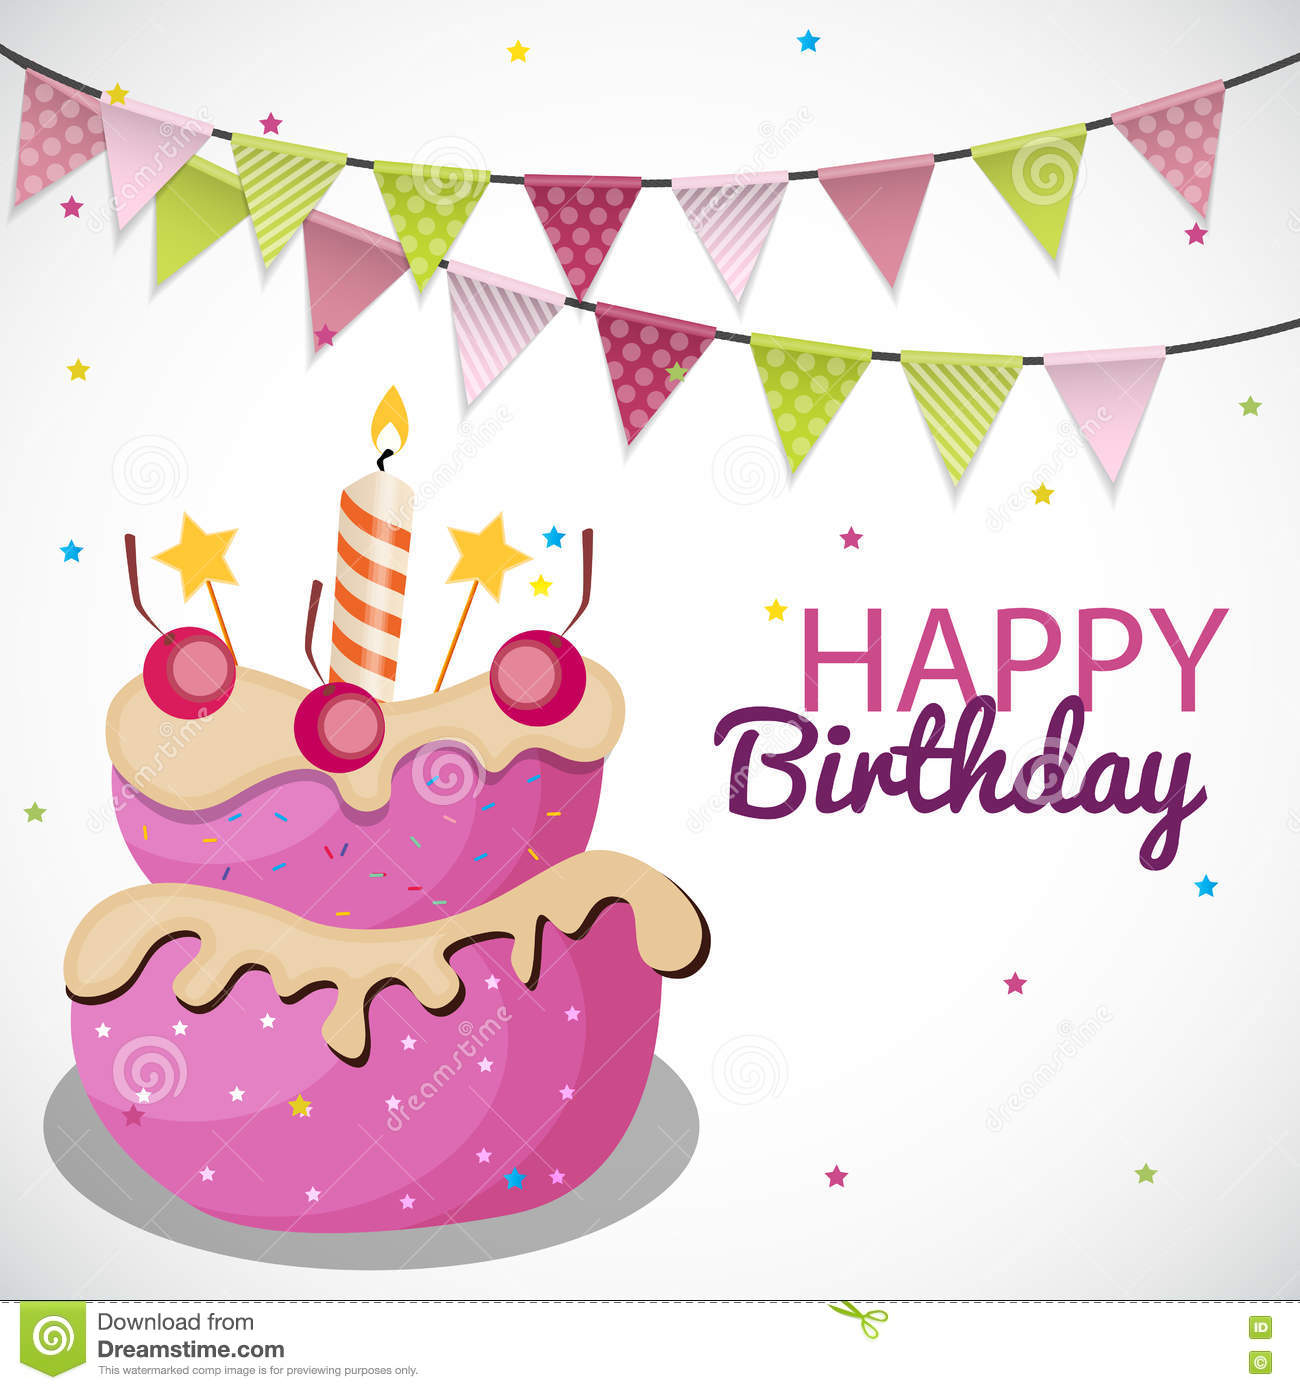 Happy Birthday Card Template With Balloons Ribbon And Candle Vector Illustration